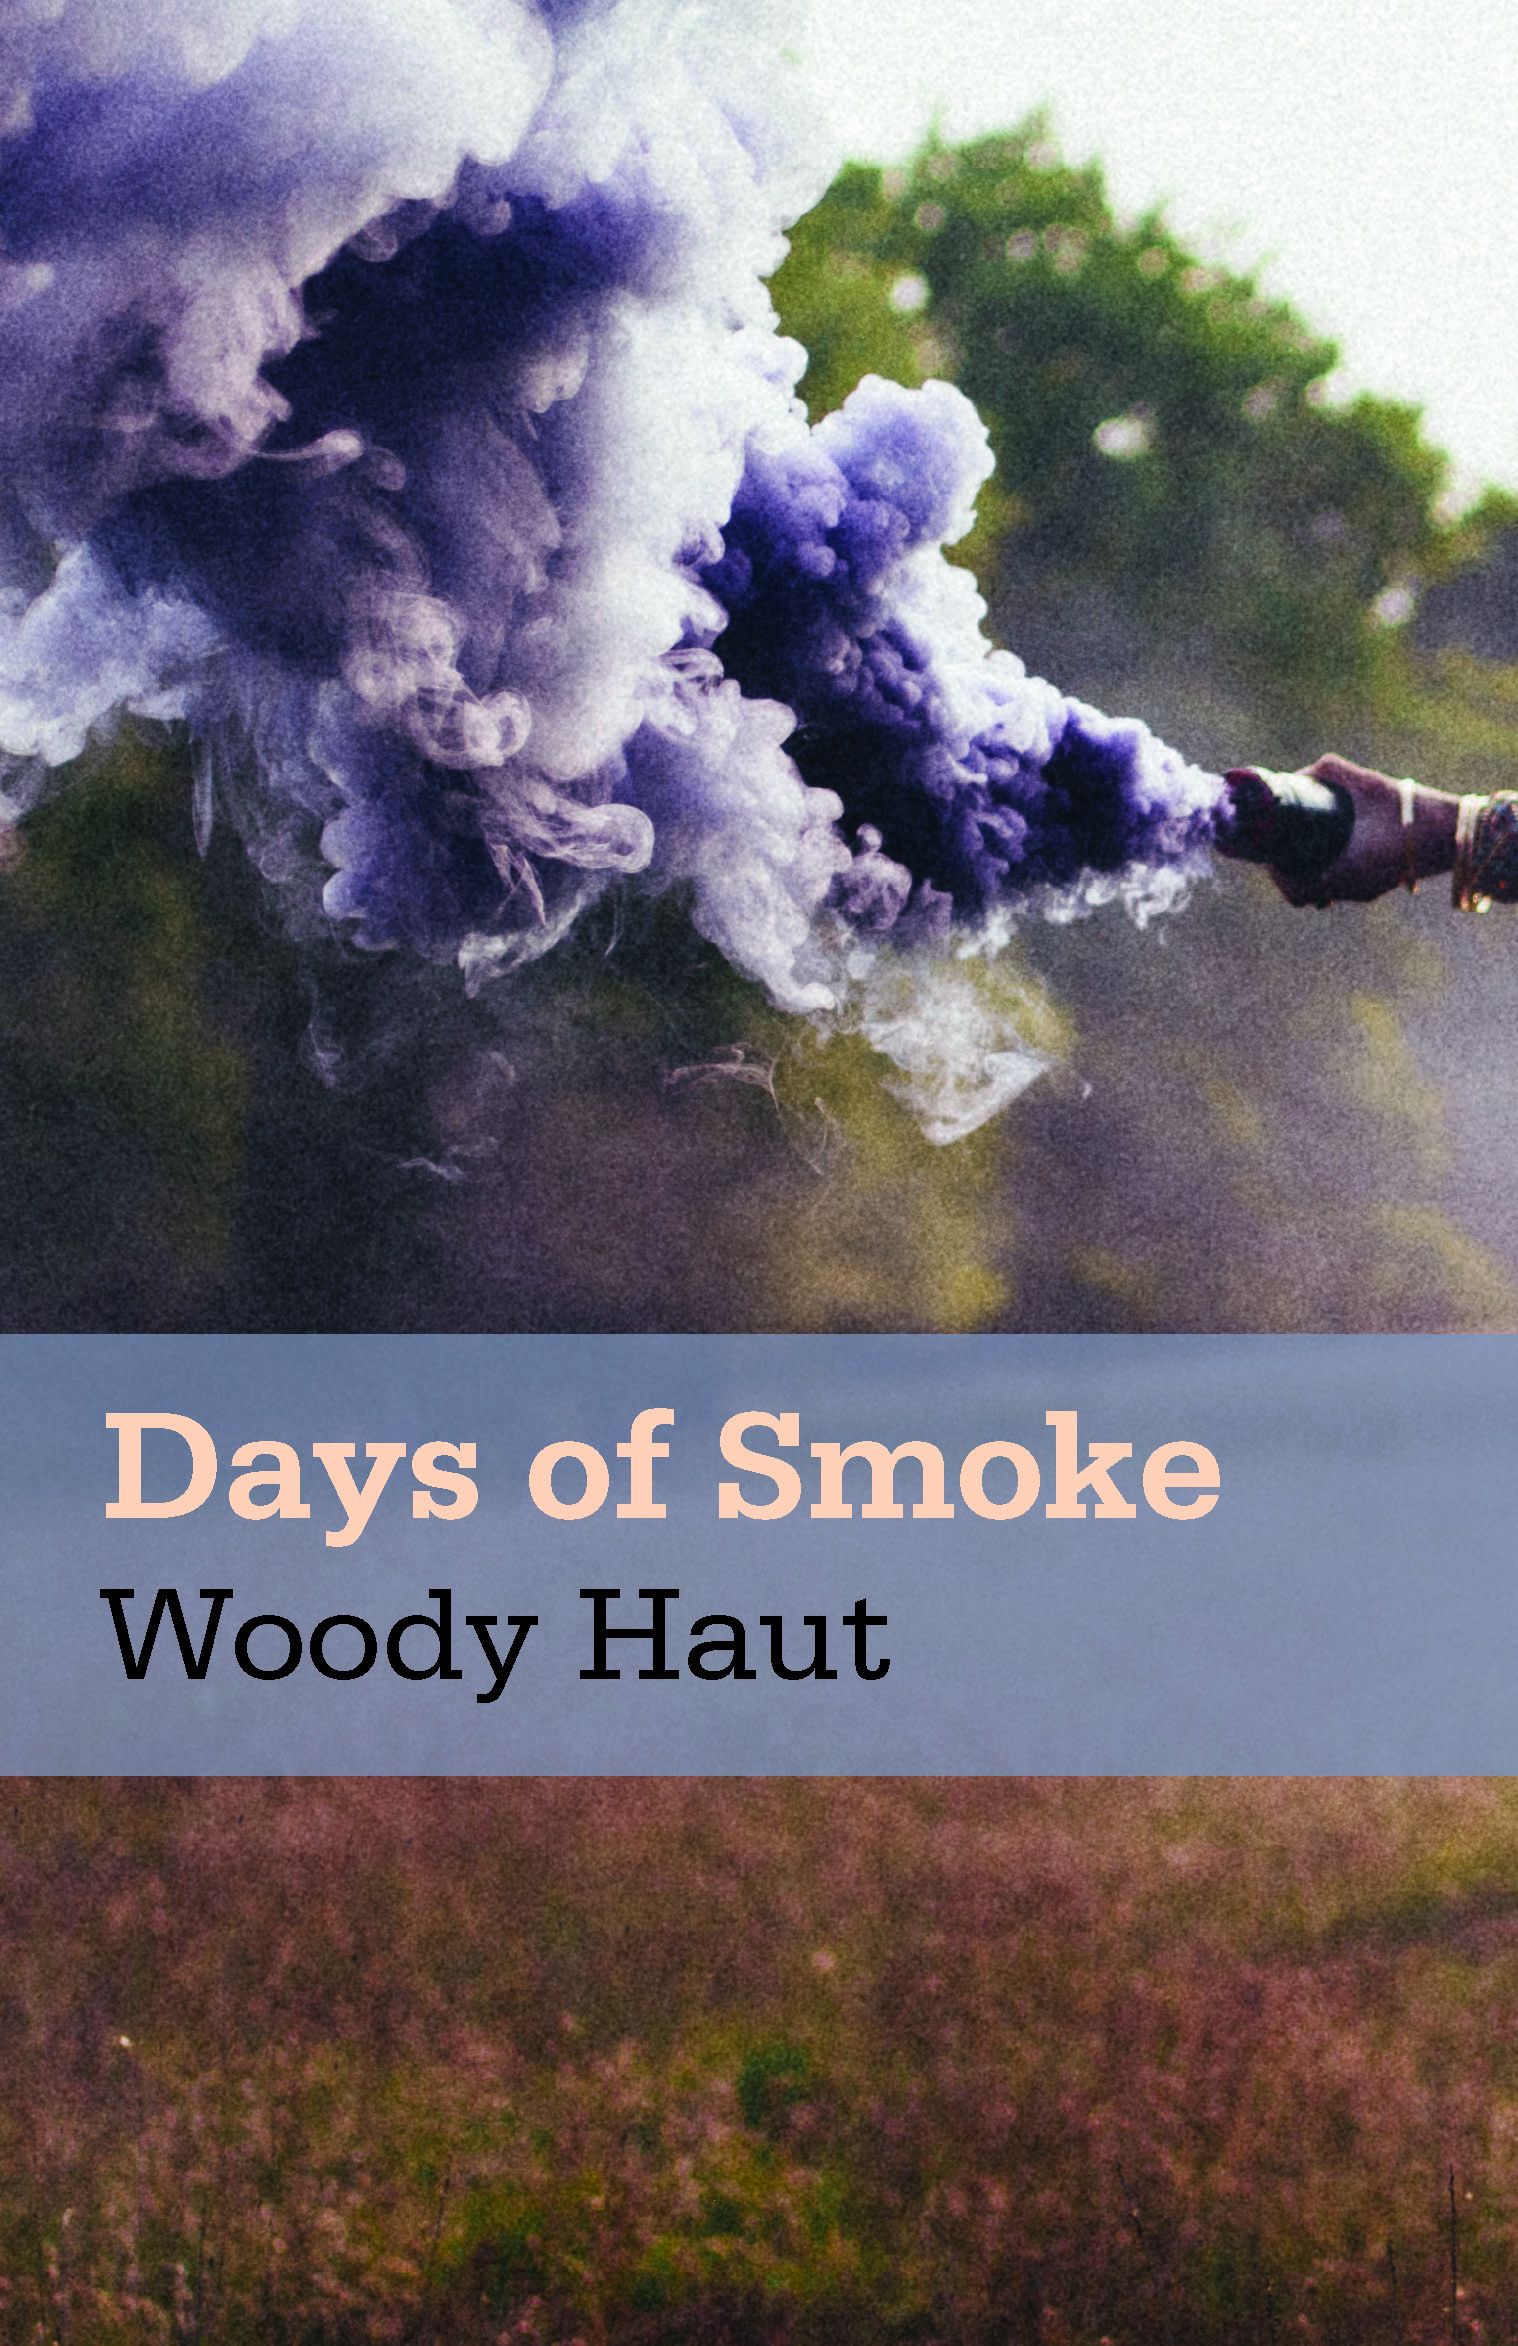 Days of Smoke: Woody Haut talks to Crime Time